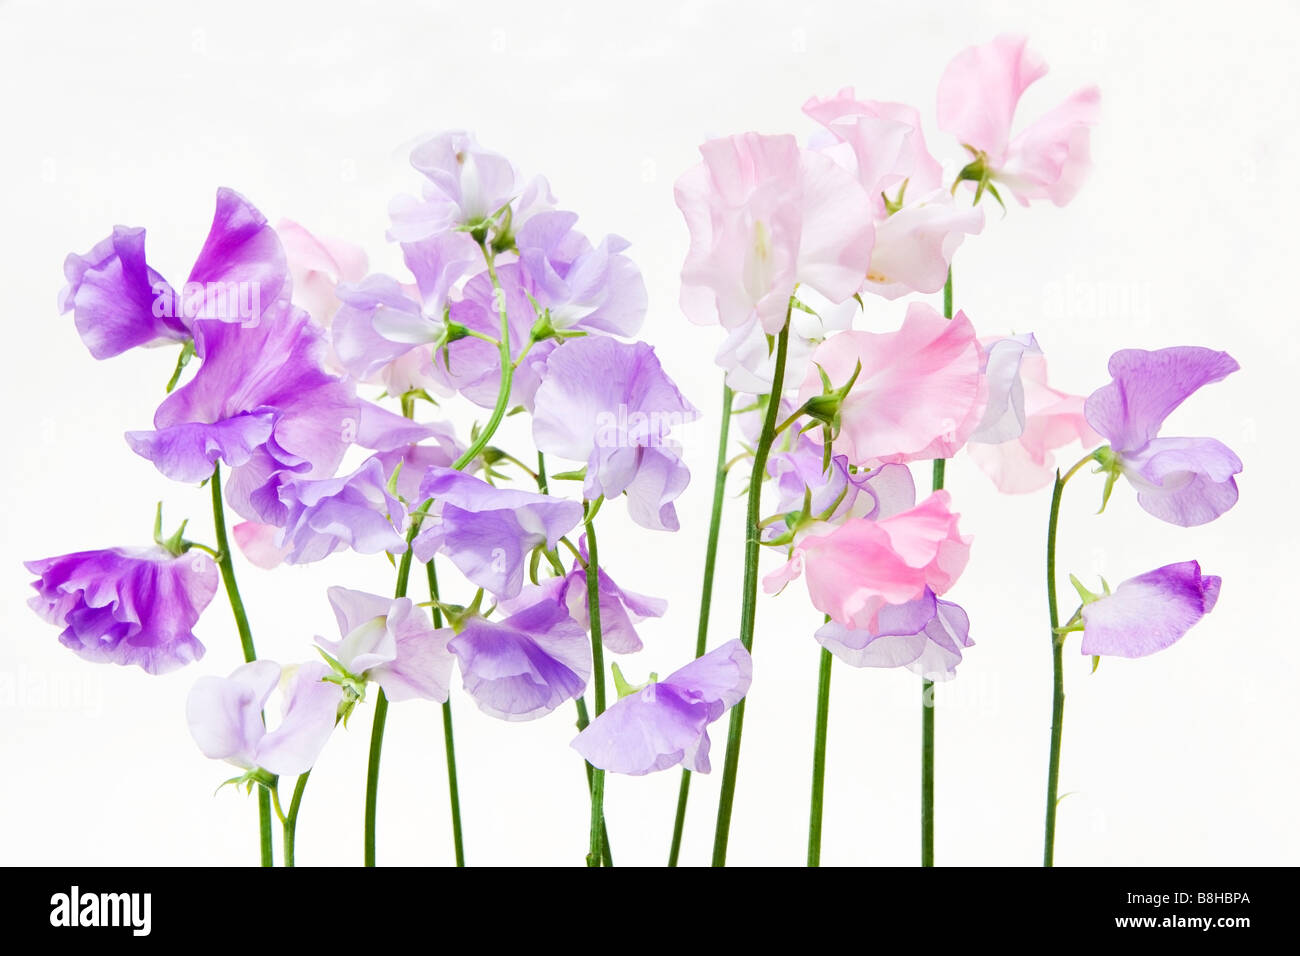 Pink and mauve Sweet peas. Latin name: Lathyrus odoratus - Stock Image